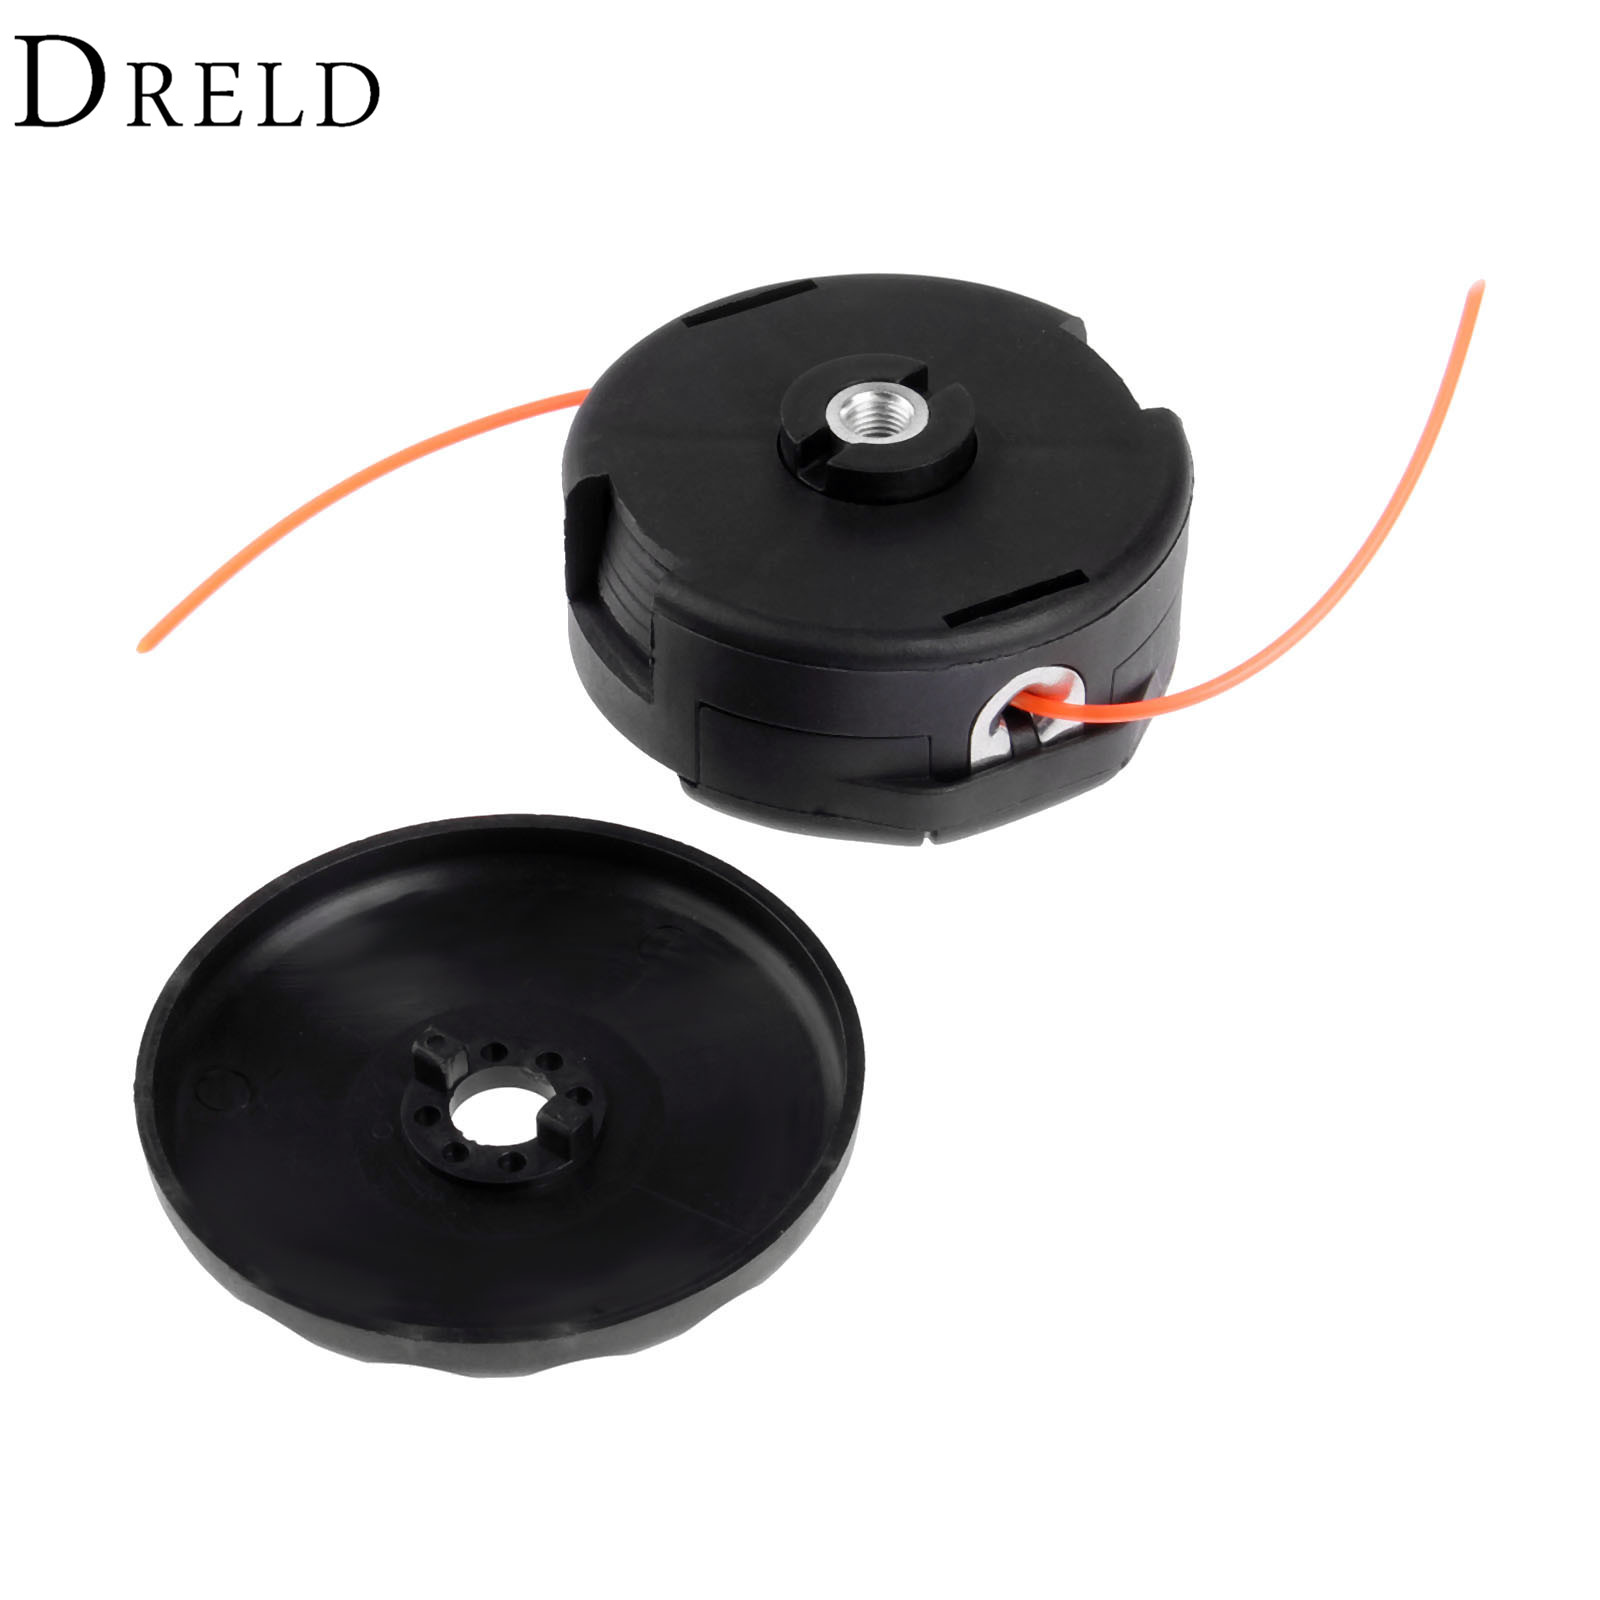 DRELD Black Speed Feed 400 Universal String Trimmer Head Adaptor M10*1.25LH Female with 2.4mm Trimmer Line Garden Tool Parts